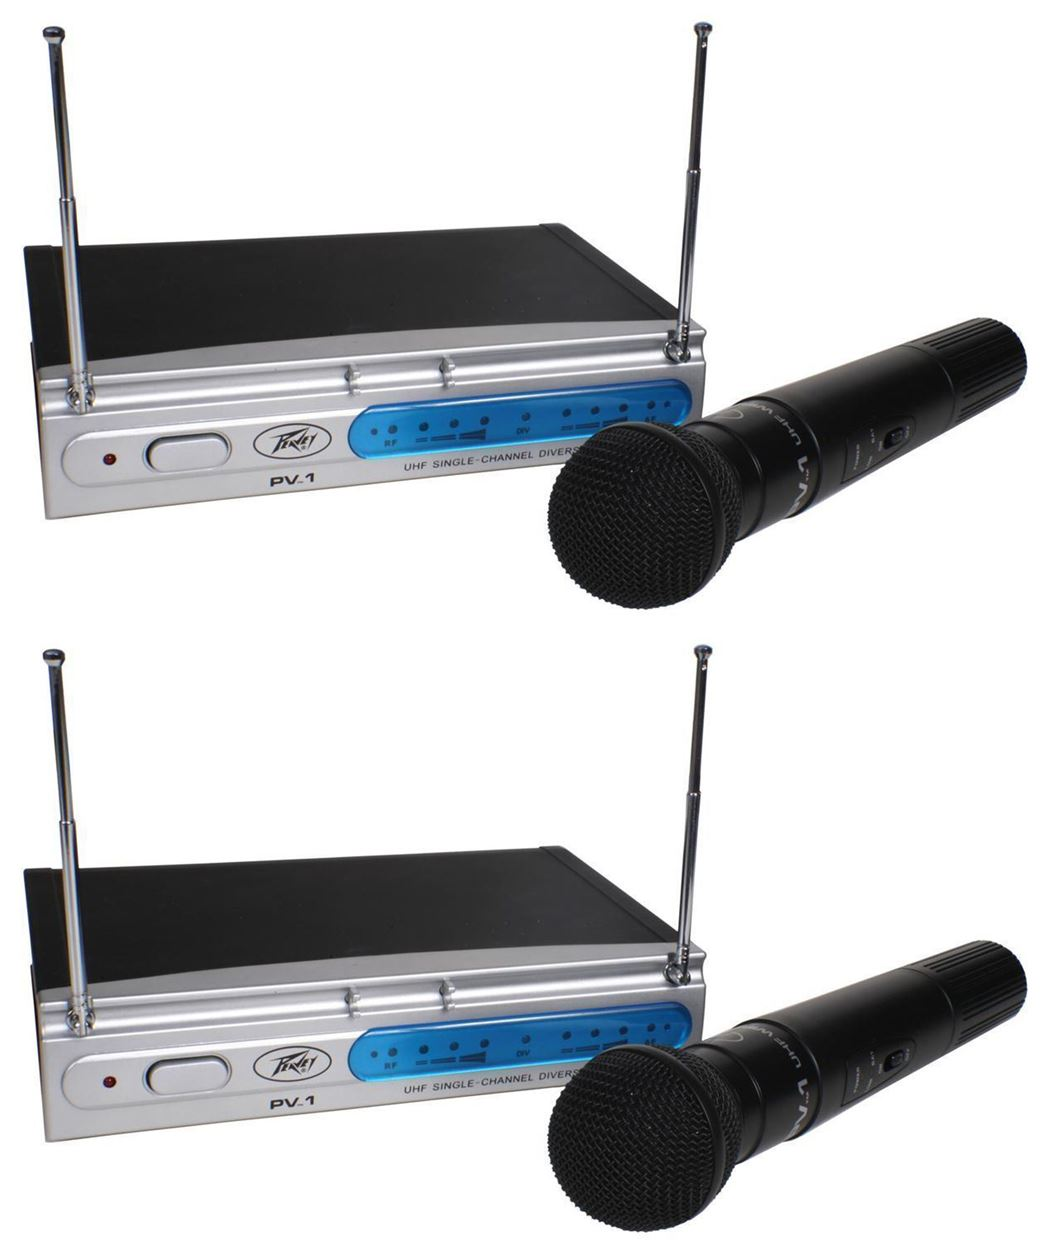 (2) Peavey PV-1 U1 HH 911.70MHZ UHF Wireless Microphones (Dual Mic System) by Peavey